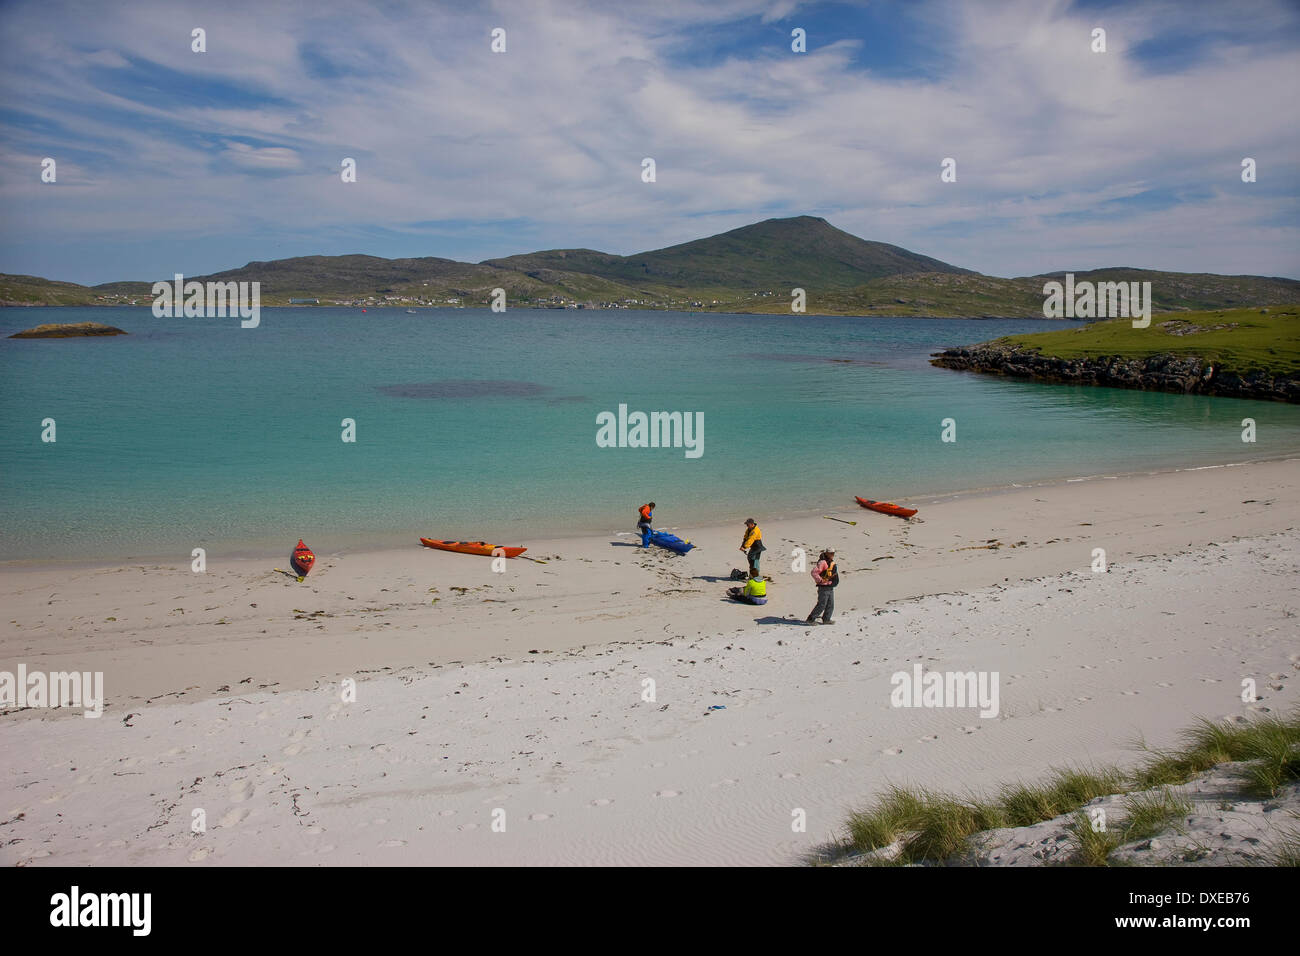 Beautiful sandy beach on the island of Vatersay with castlebay, Isle of Barra in view. Stock Photo